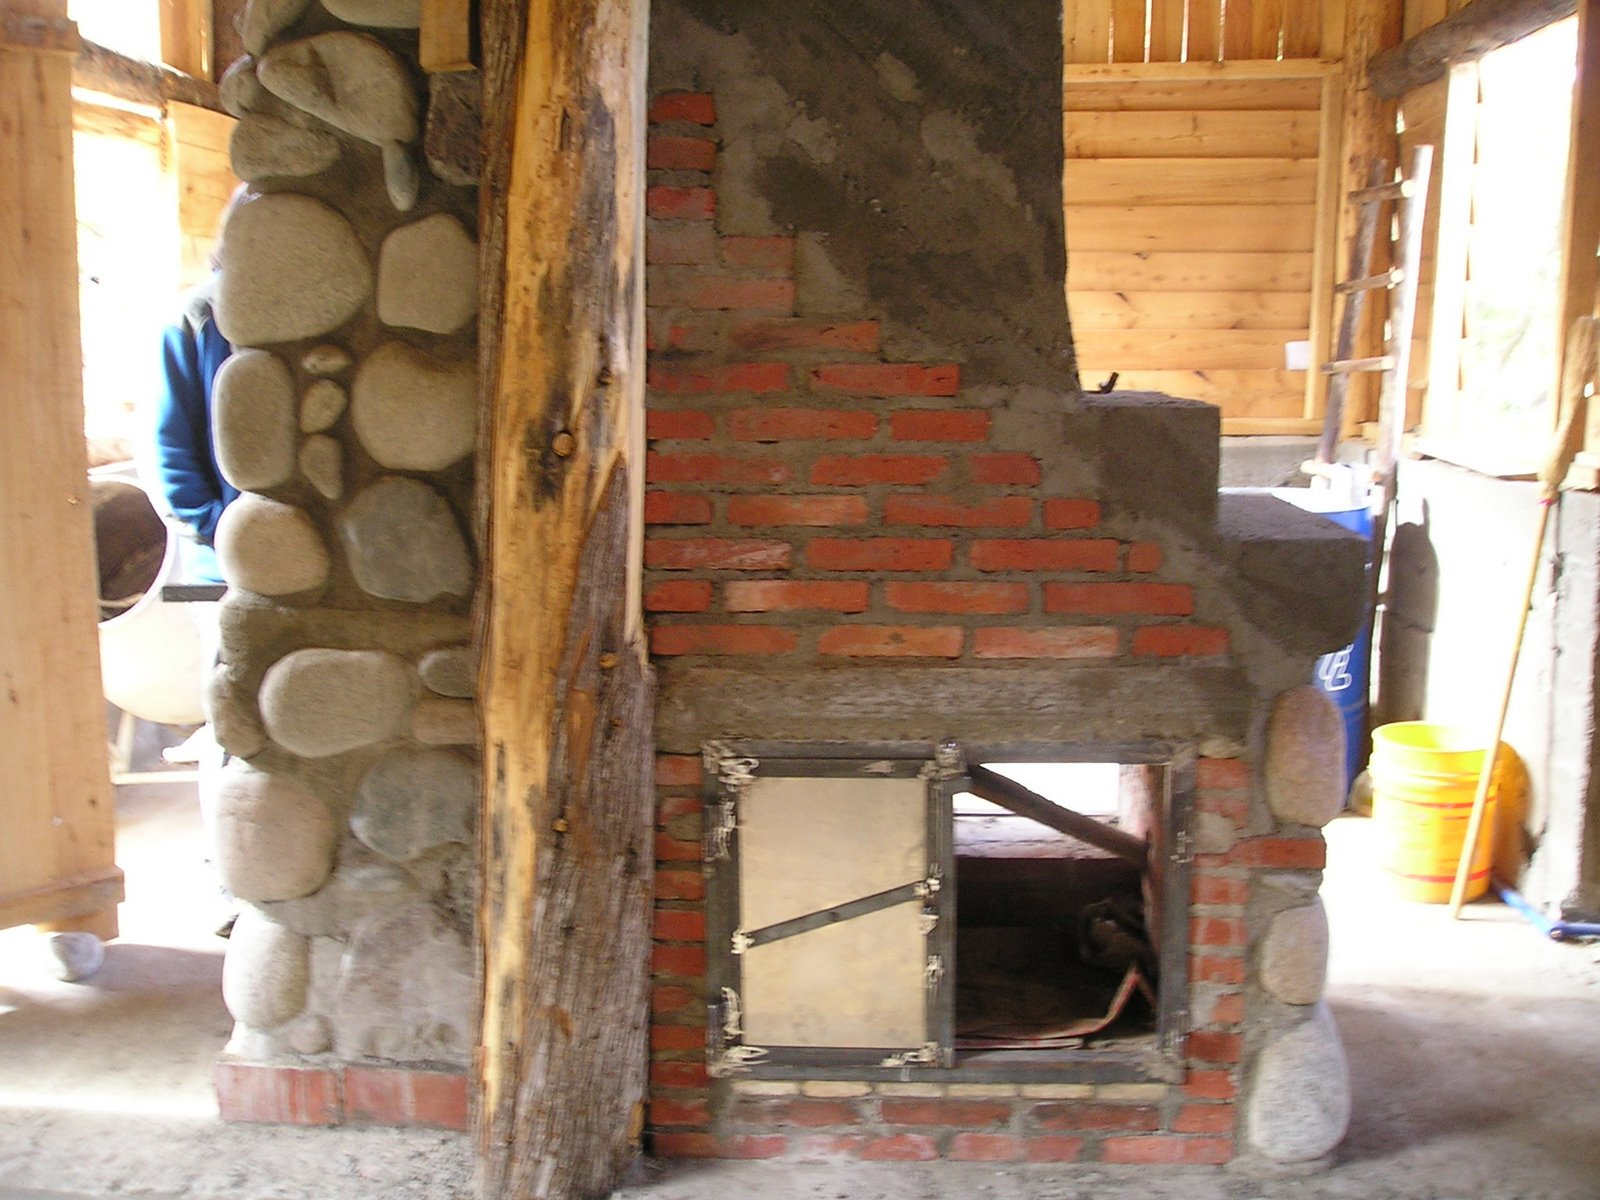 Fireplace mass stove oven water heater and staircase for Rocket stove home heating